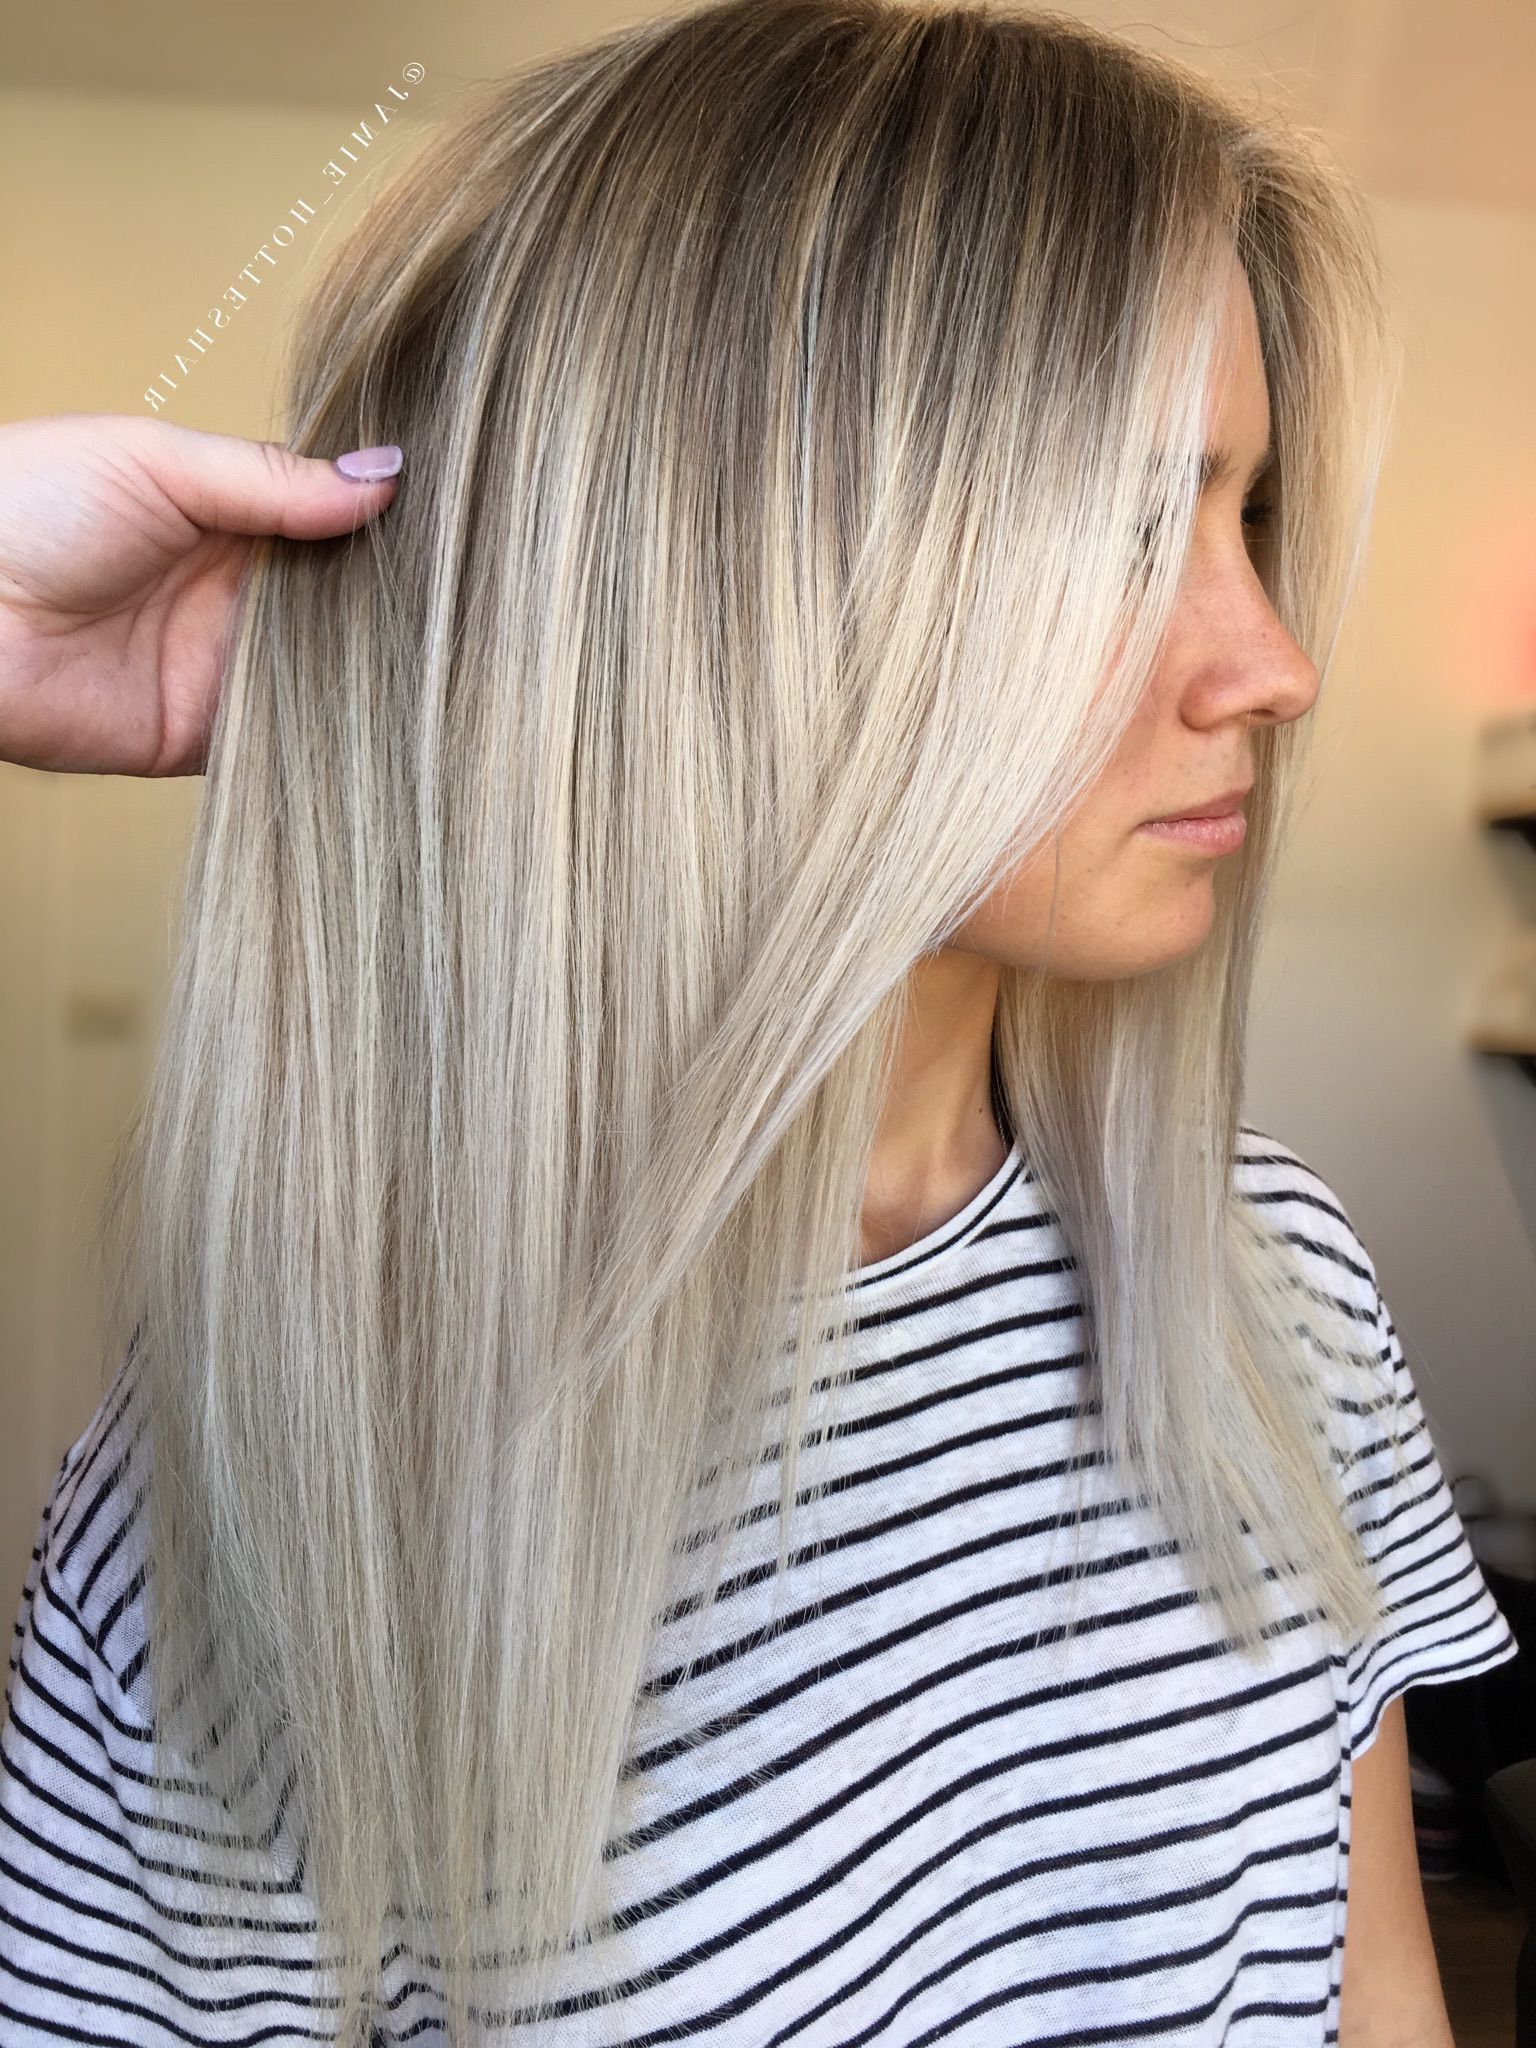 Blonde Glatte Haare Pin By Jessica Surdyka On Hair Goals Pinterest Blonde